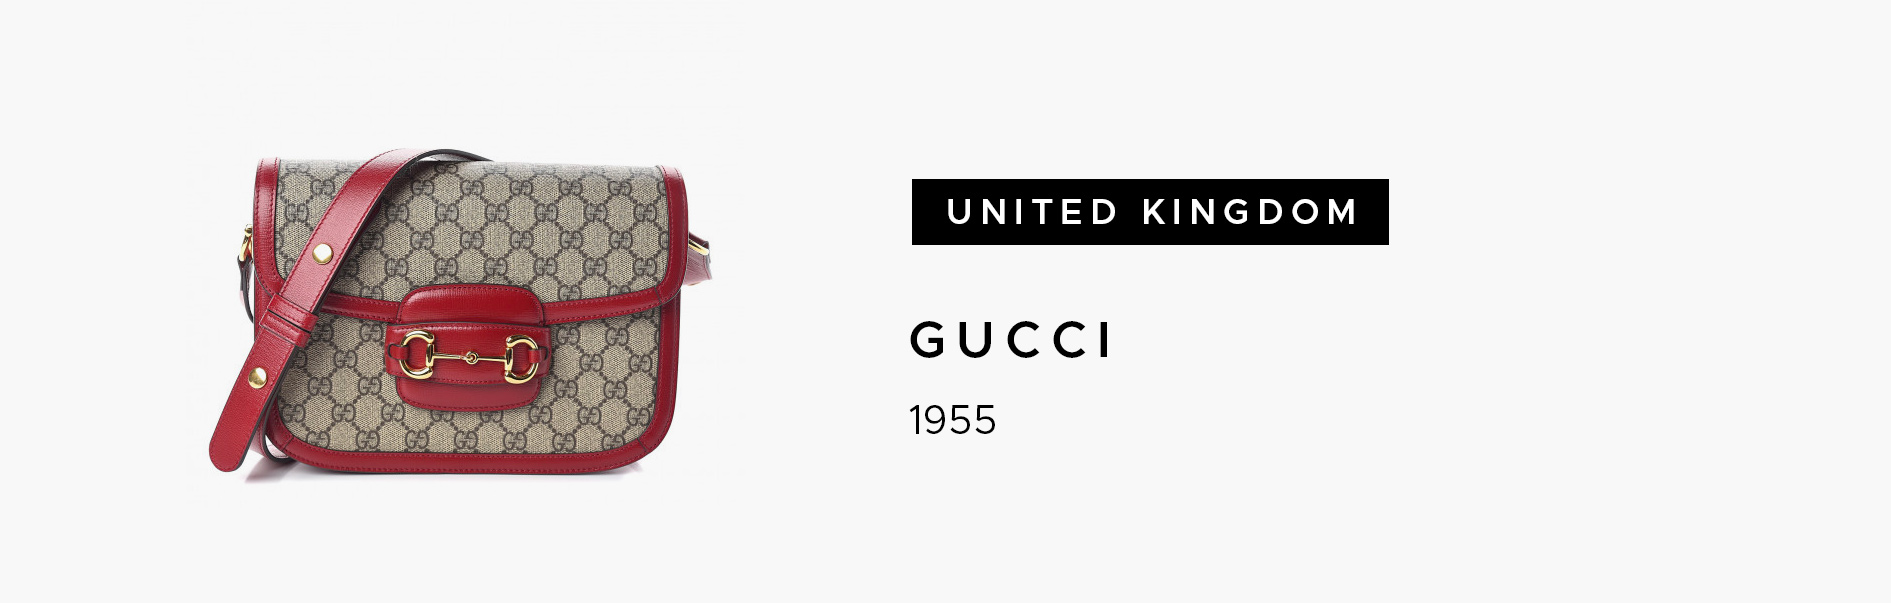 UK Gucci 1955